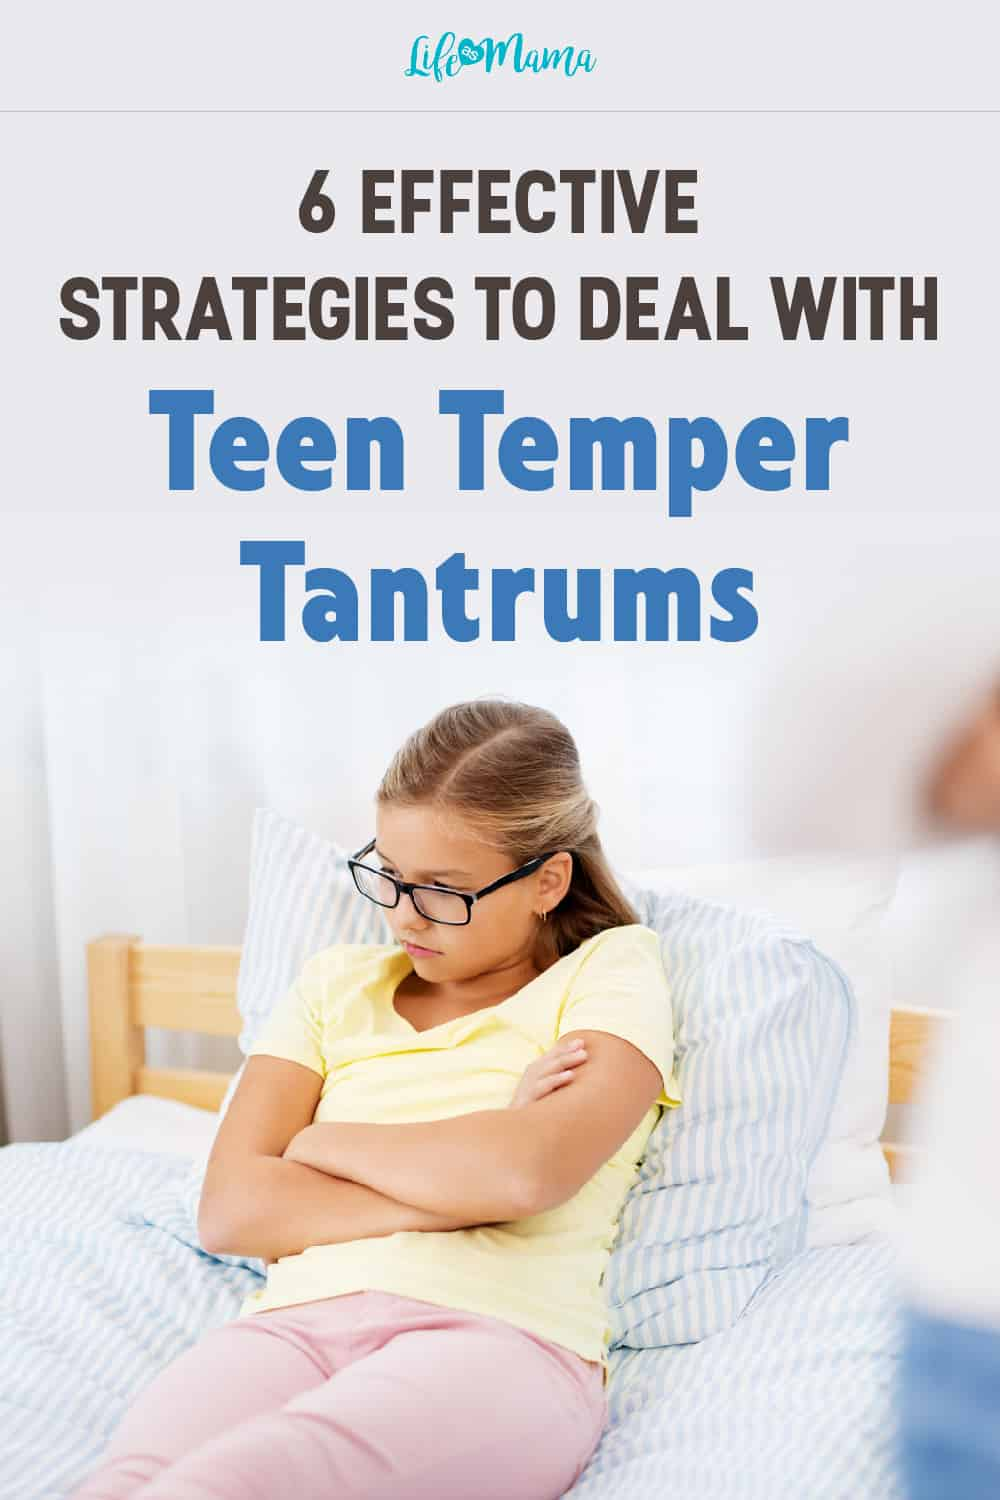 6 Effective Strategies To Deal With Teen Temper Tantrums-01-01